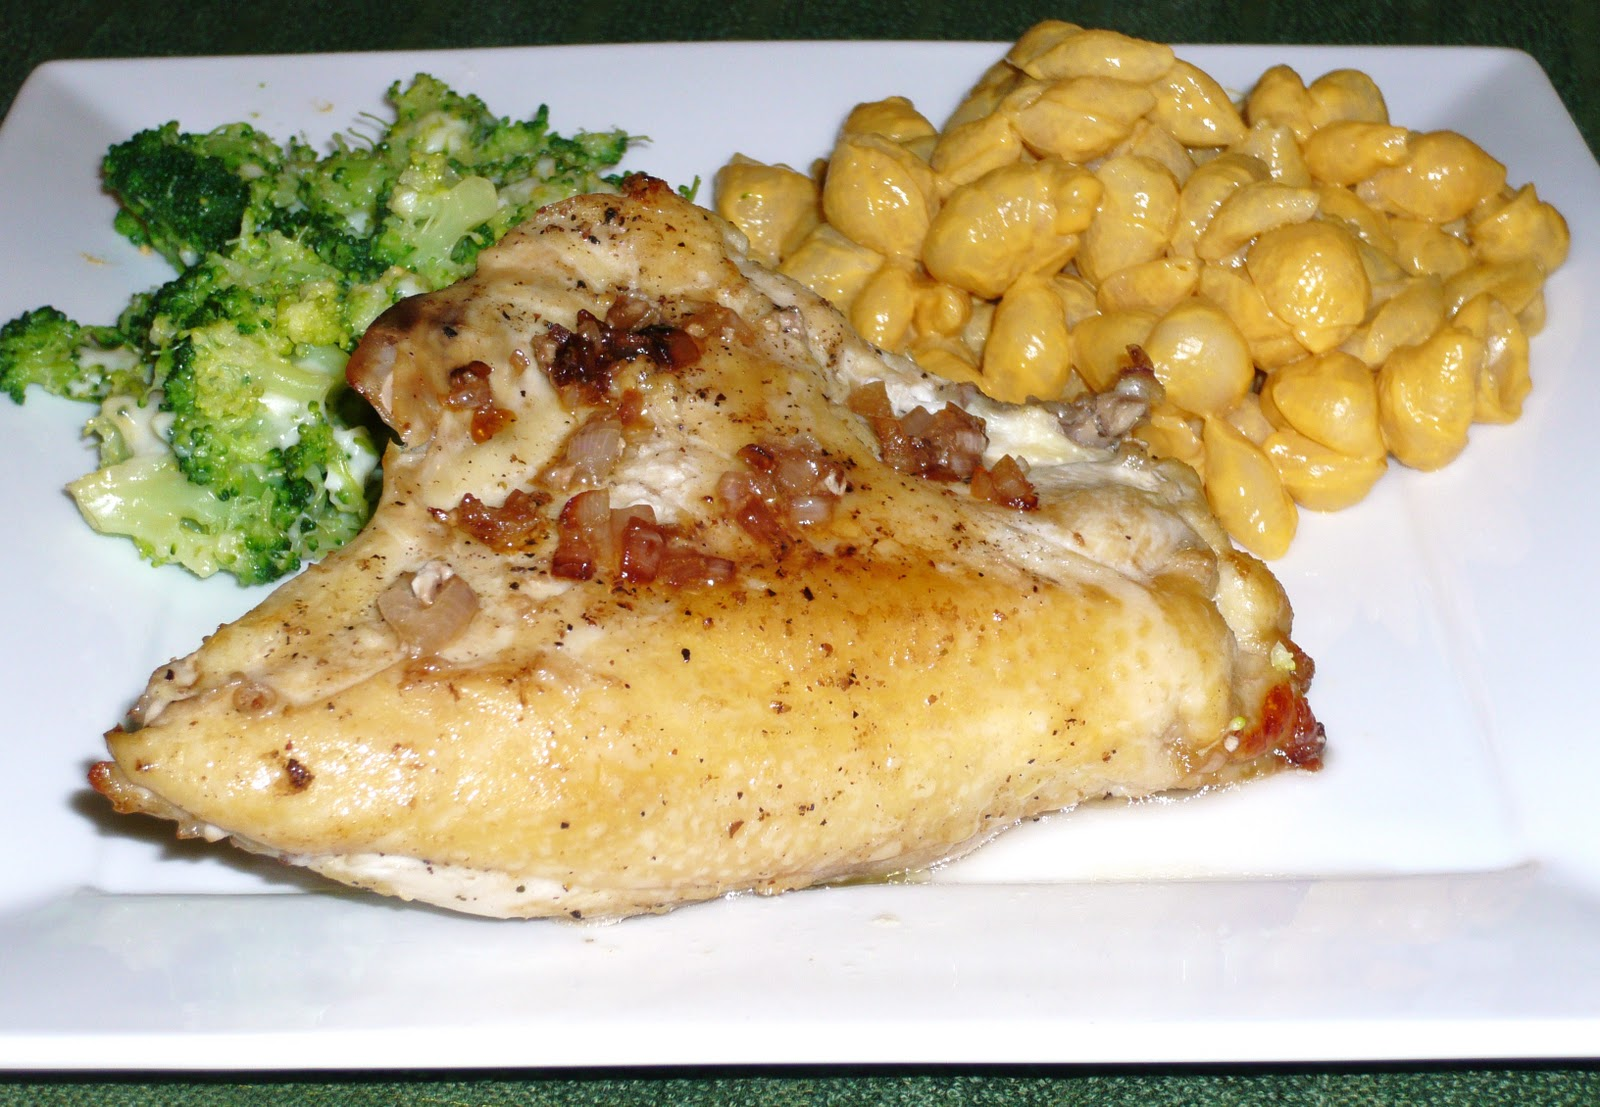 Kellys Kitch: Roast Chicken with Caramelized Shallots